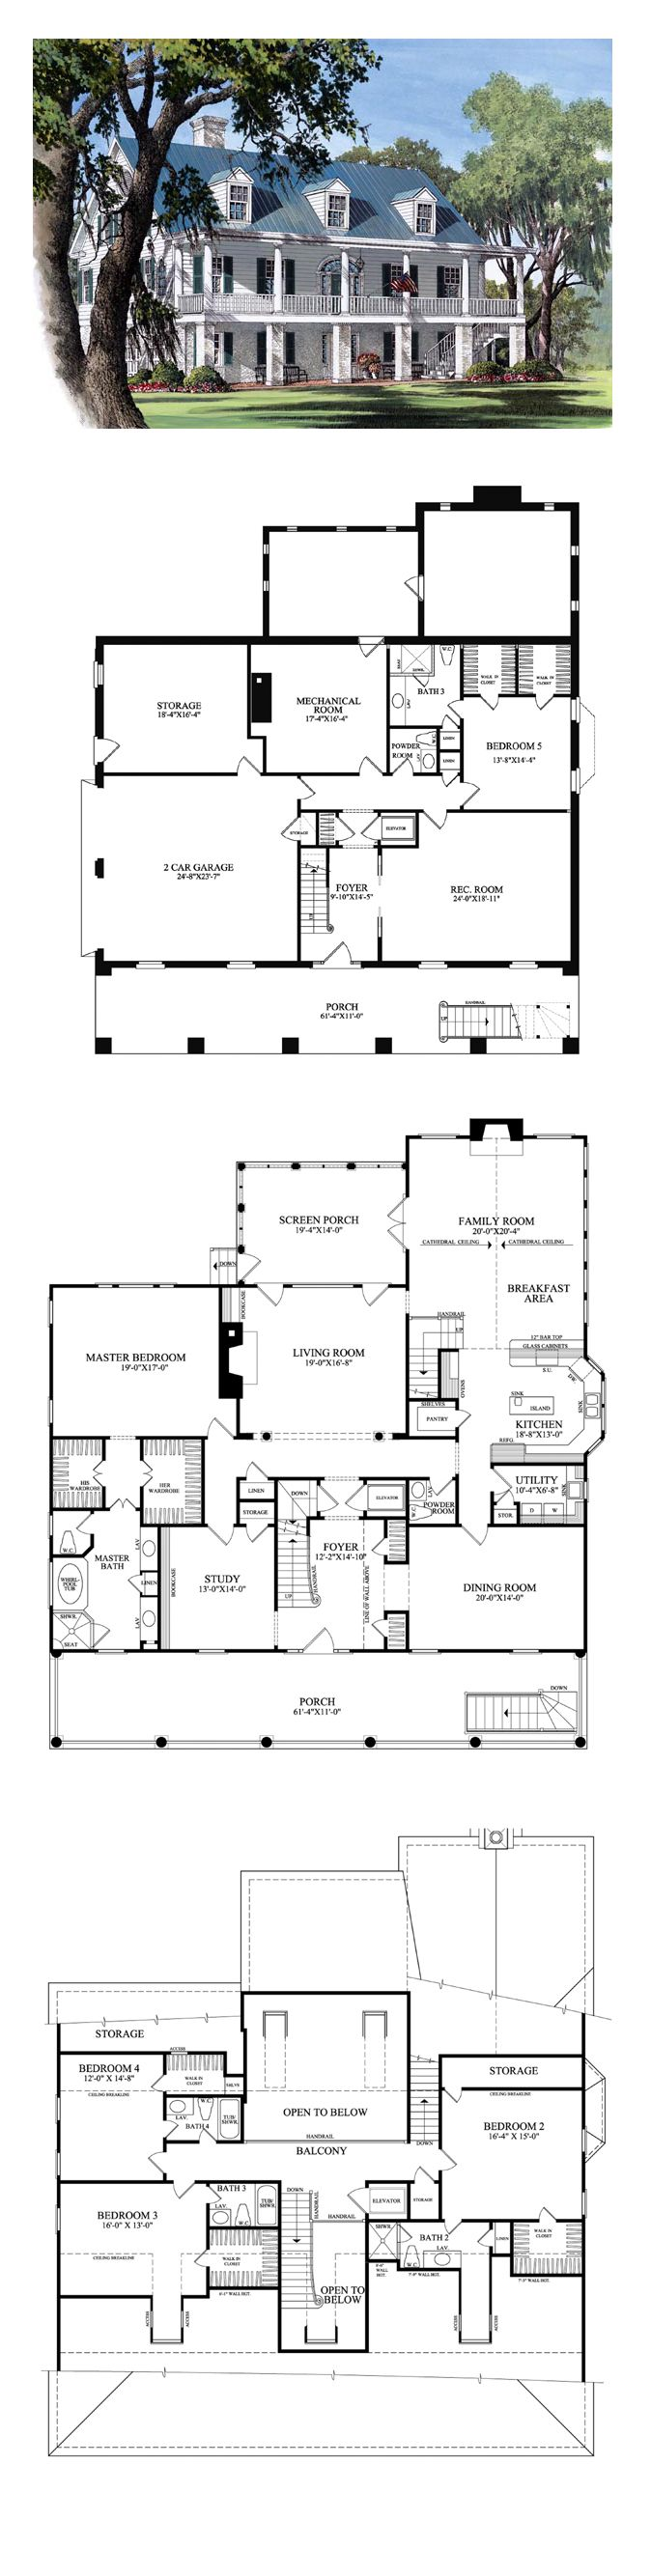 Southern Style House Plan 86178 With 5 Bed 6 Bath 2 Car Garage